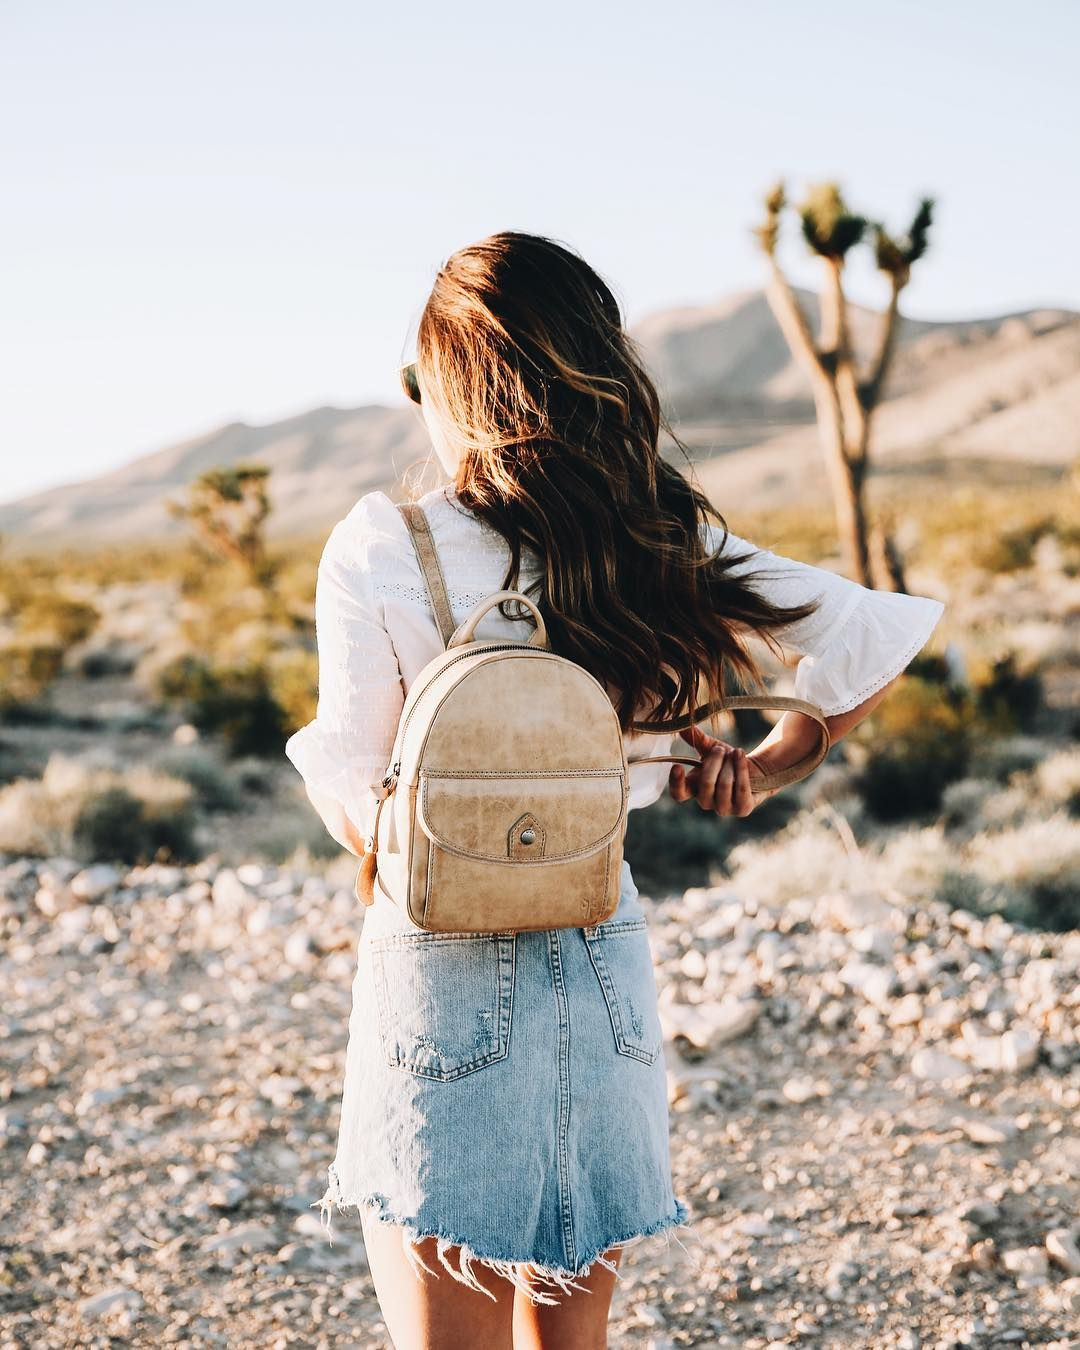 fac70a0a81 The new Melissa Mini Backpack is perfect for adventures